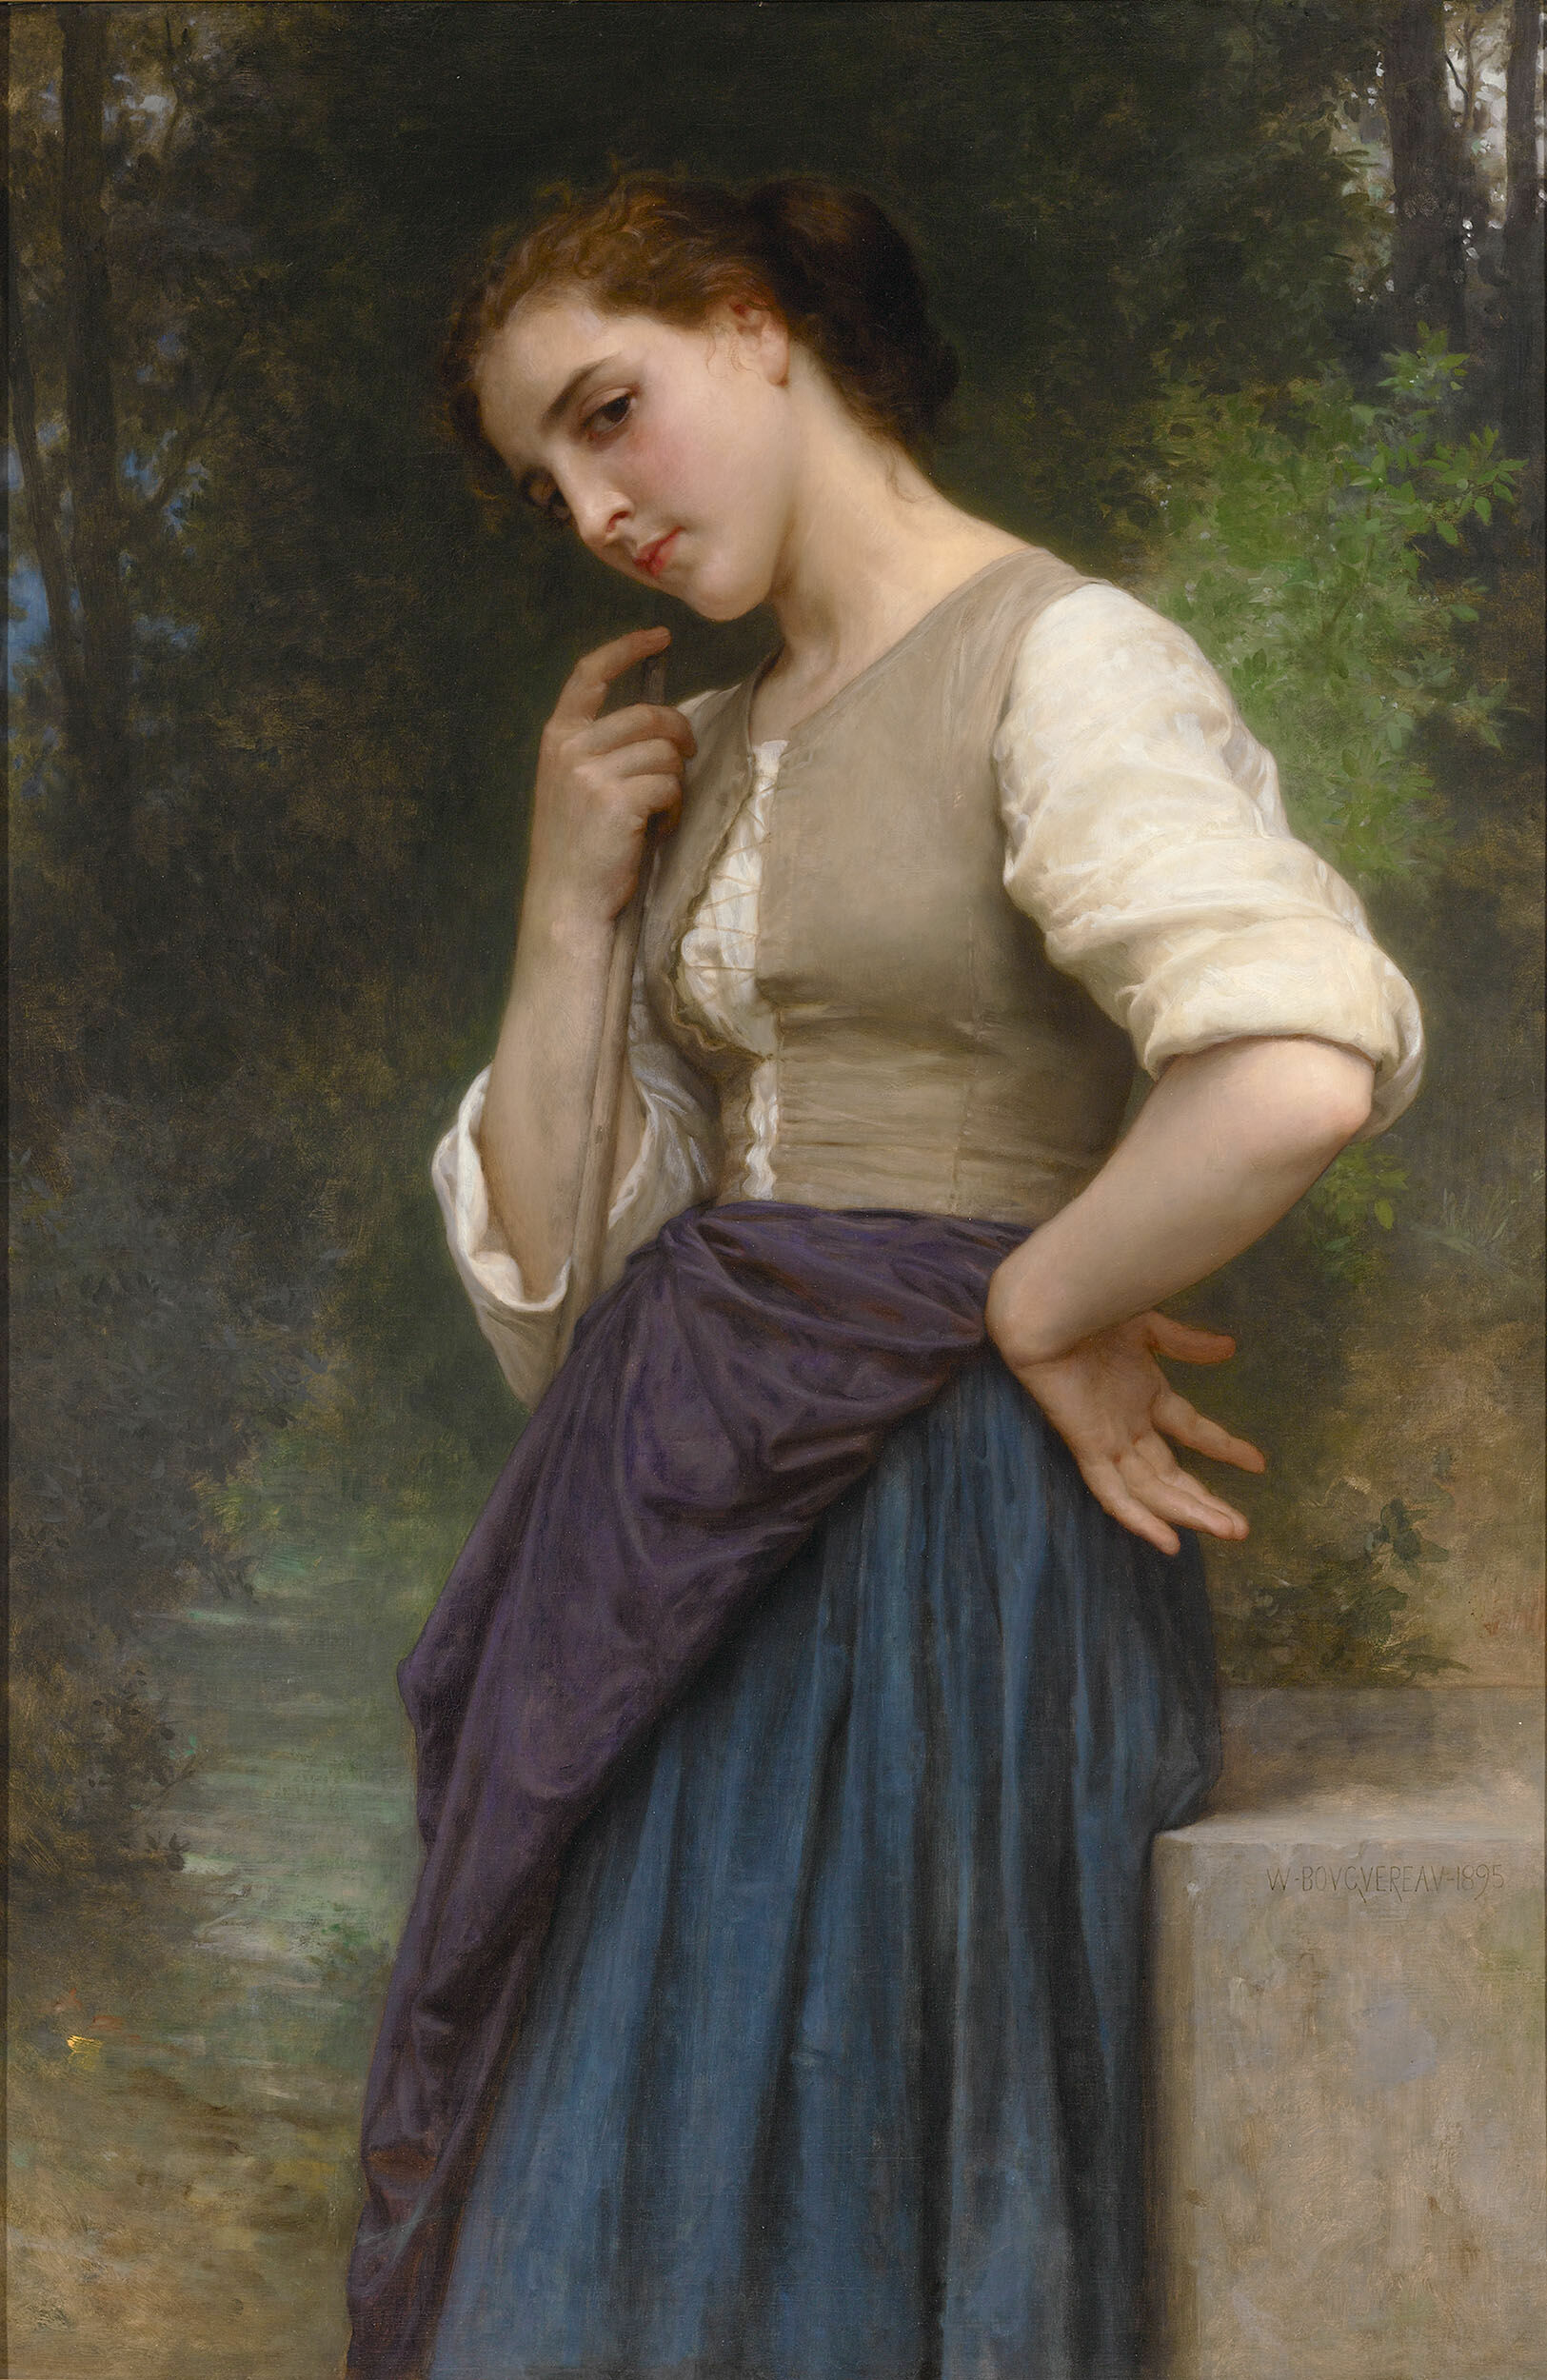 Reference - Original from W. A. Bouguereau